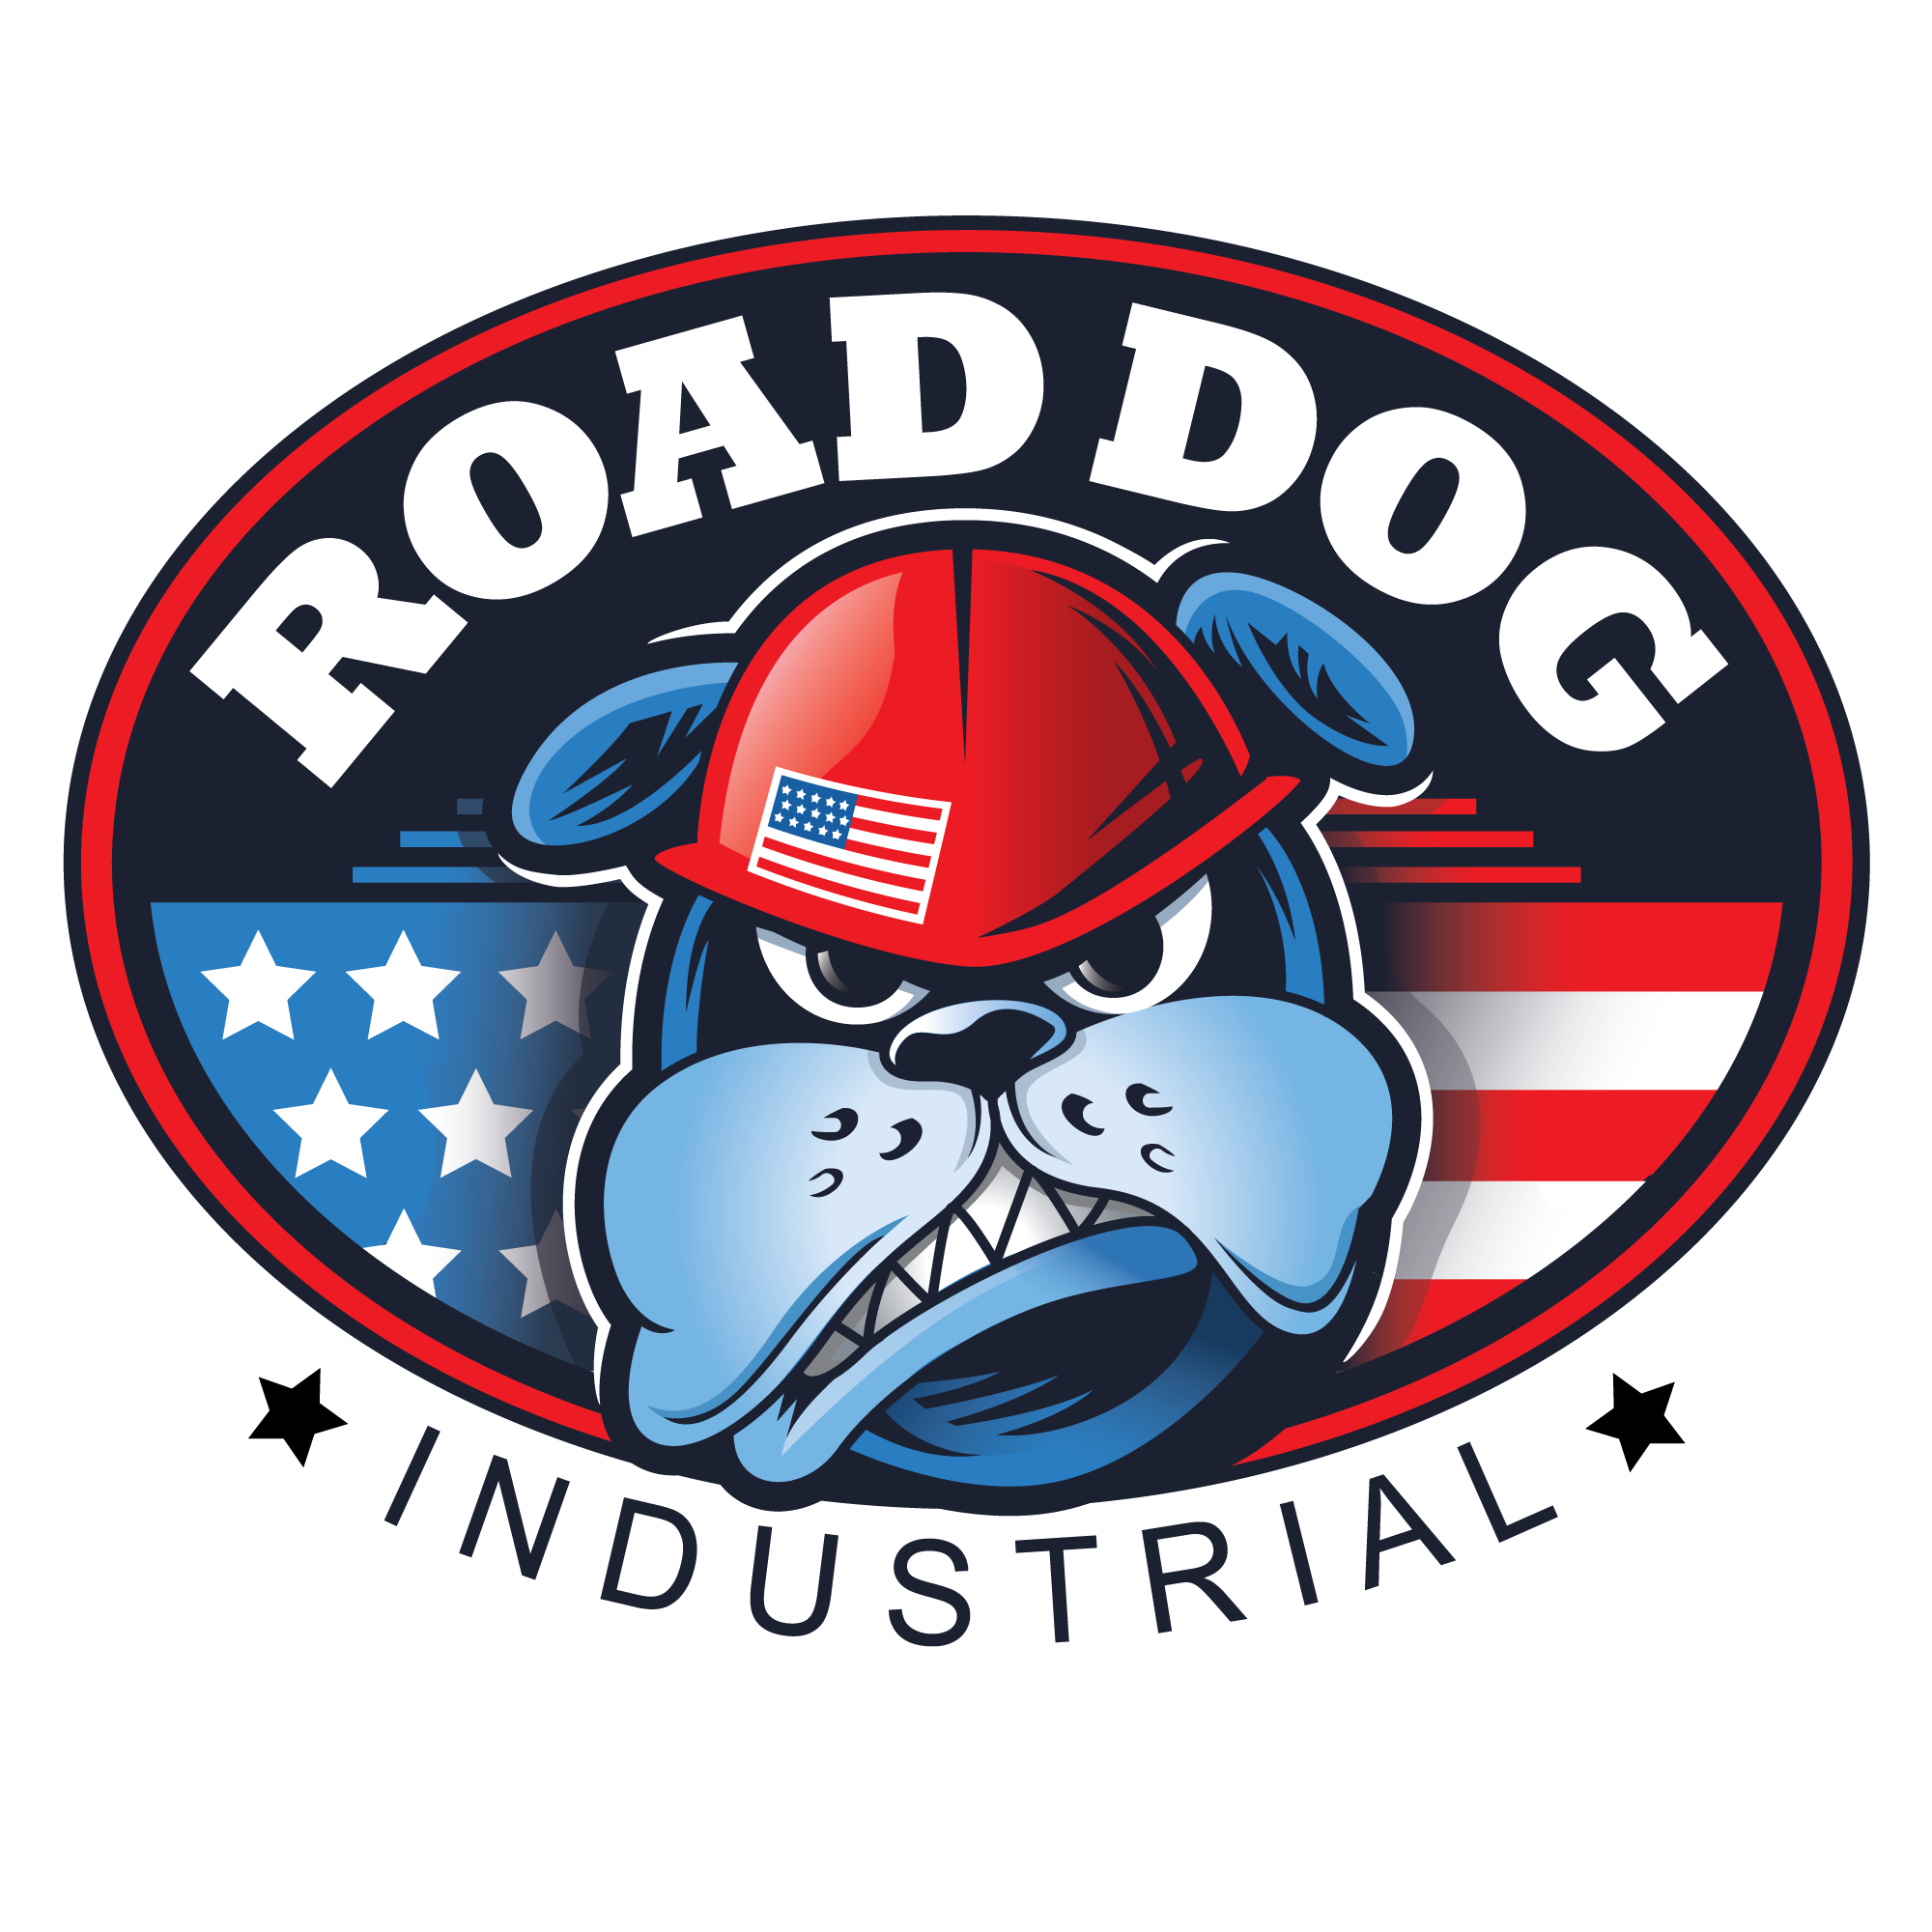 Industrial staffing agency needs a logo upgrade